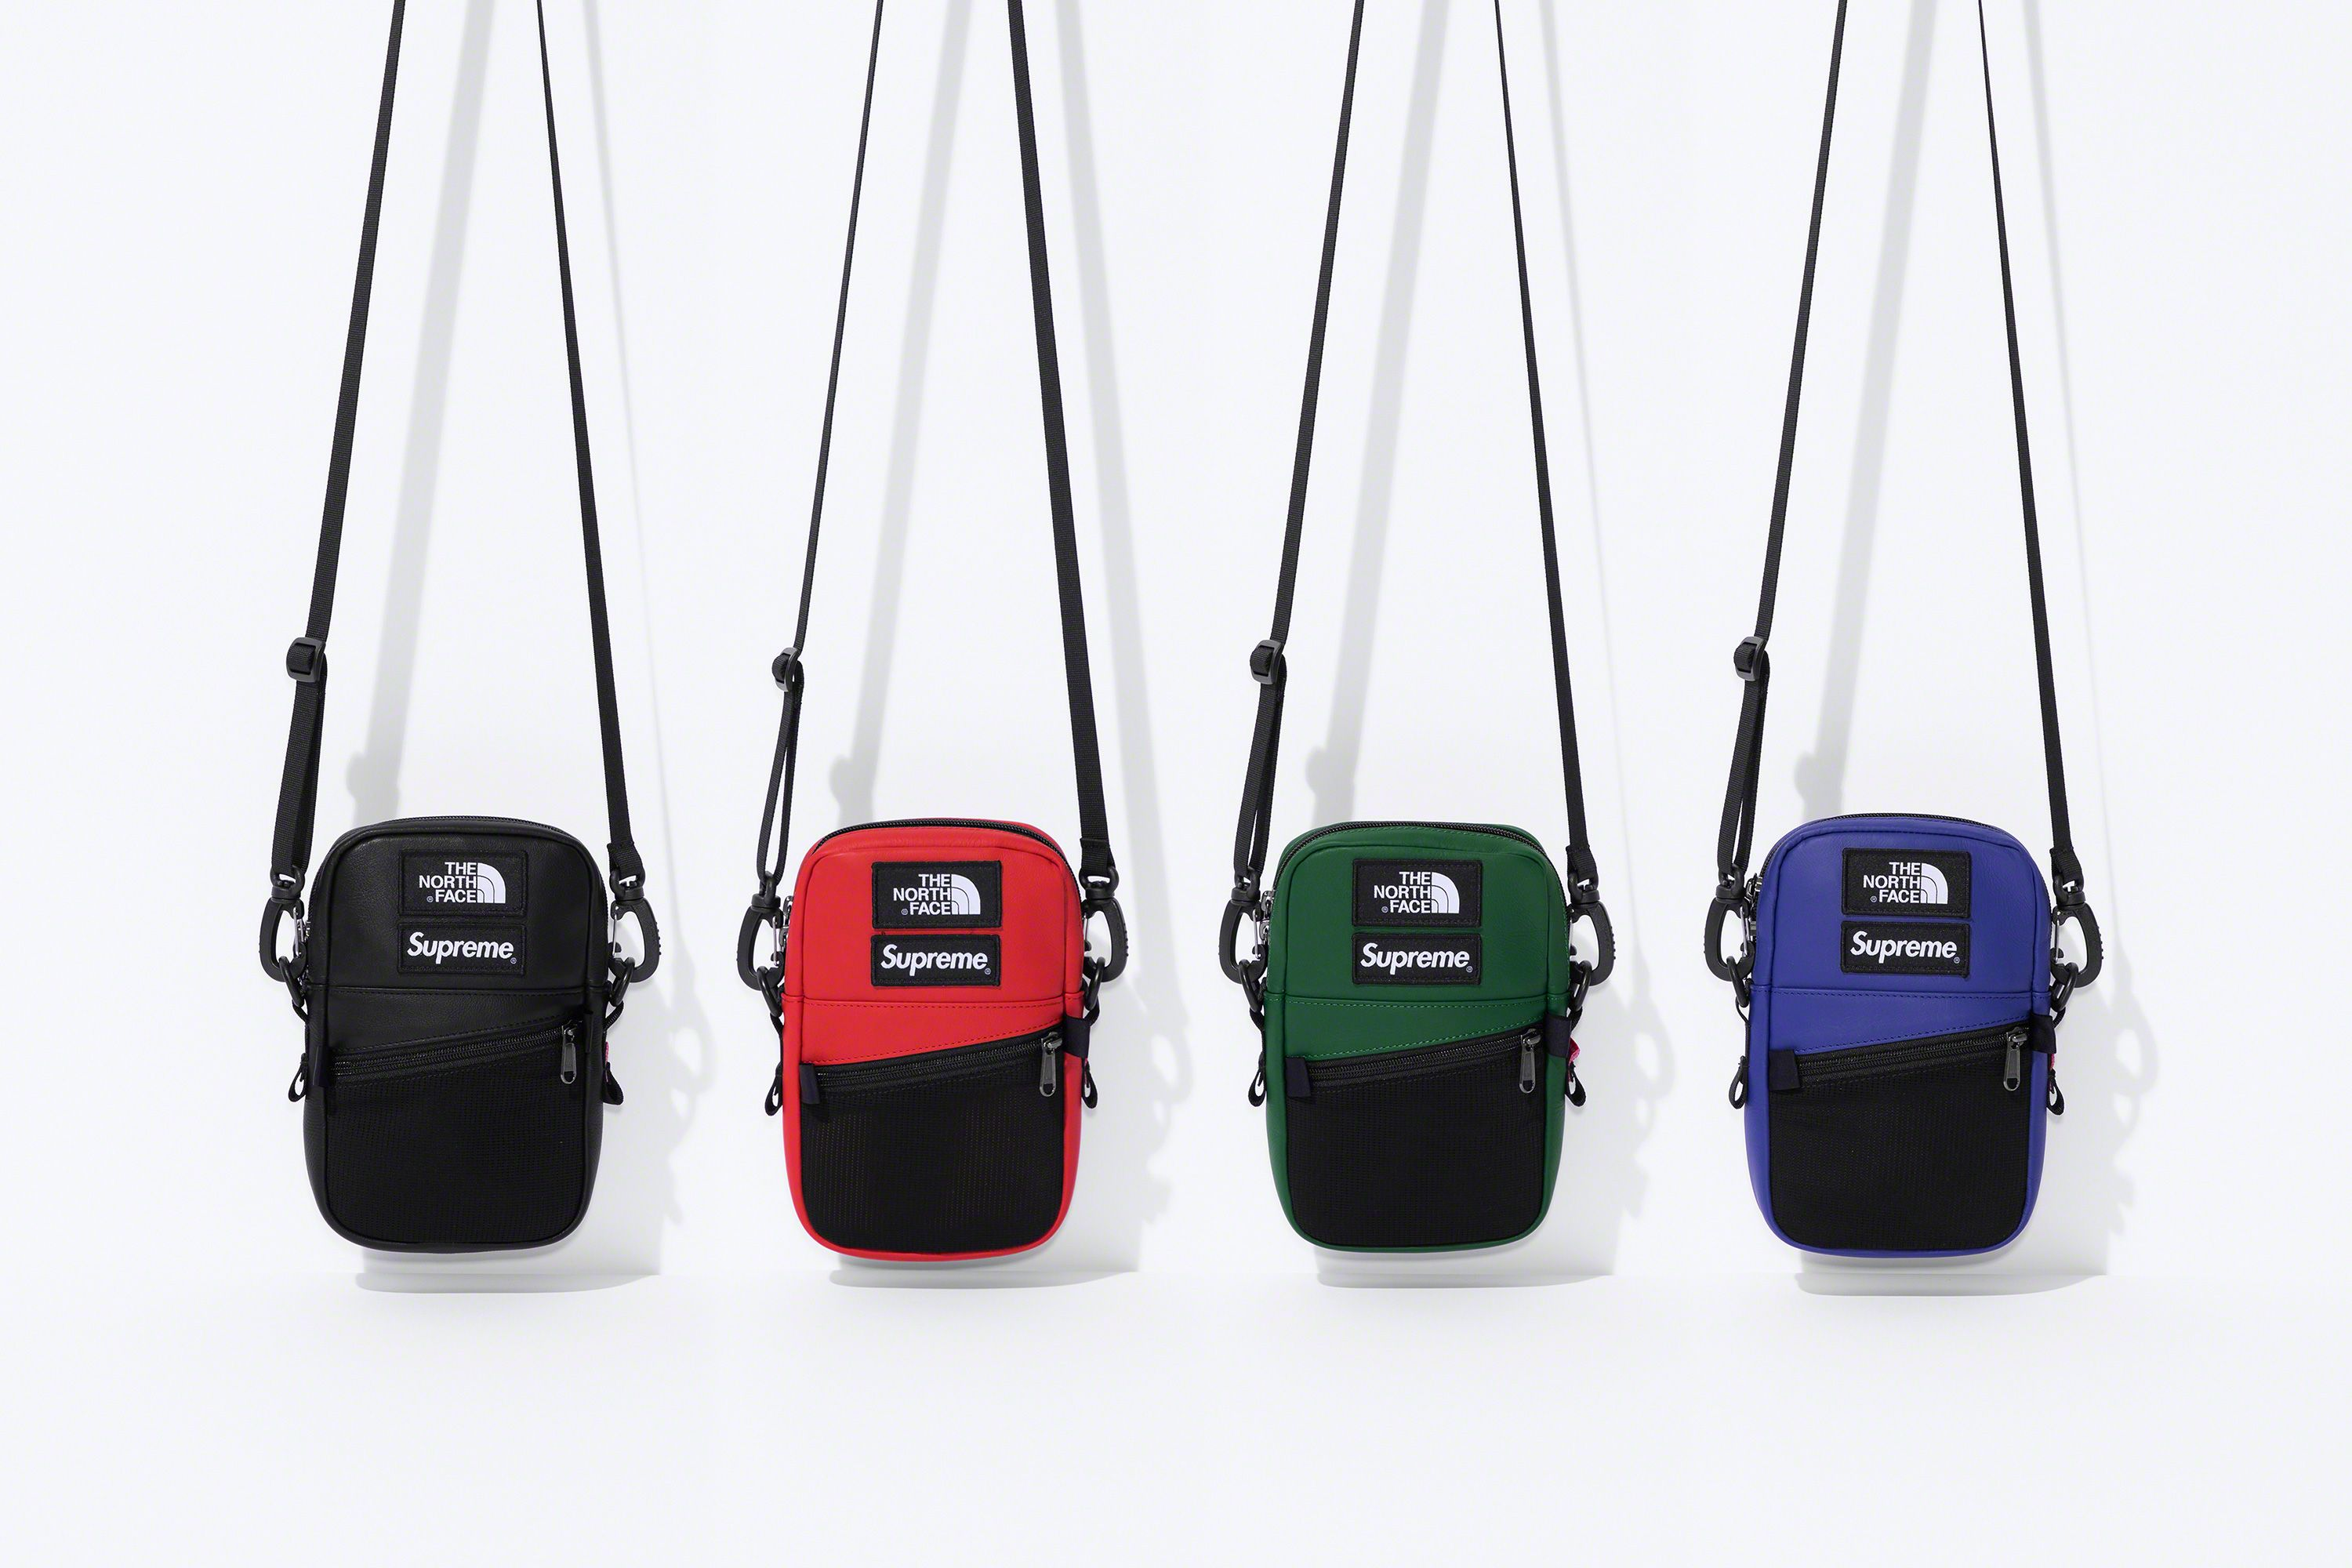 8a816a189 Supreme and The North Face Collaboration Brings Streetwear Vibe to ...